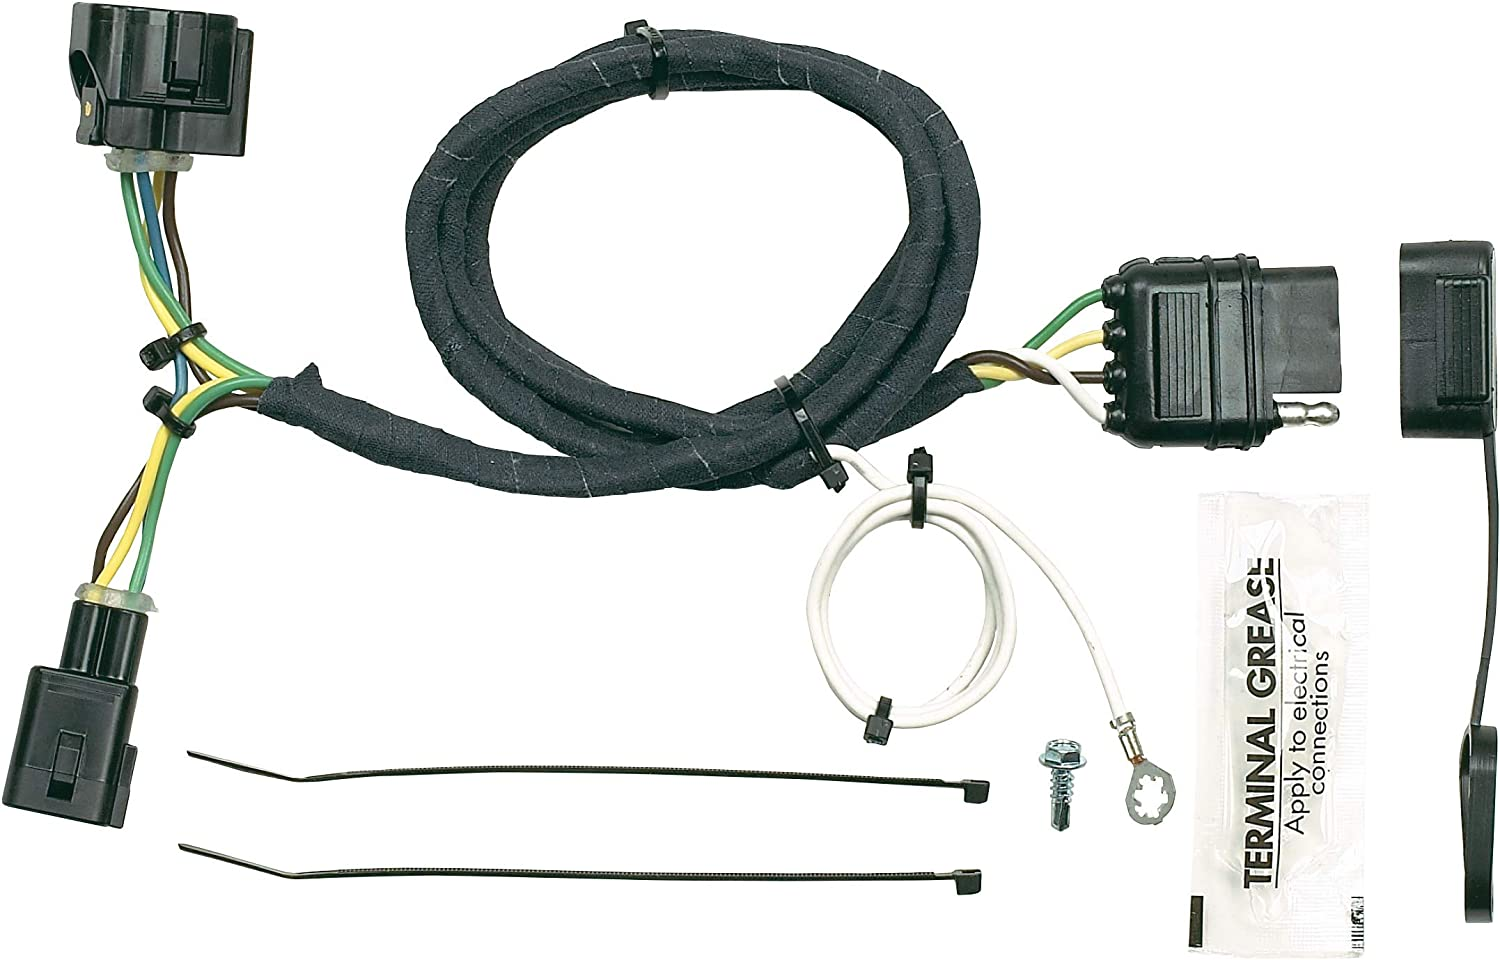 05 jeep wrangler lights wiring connector amazon com hopkins 42615 plug in simple vehicle wiring kit  hopkins 42615 plug in simple vehicle